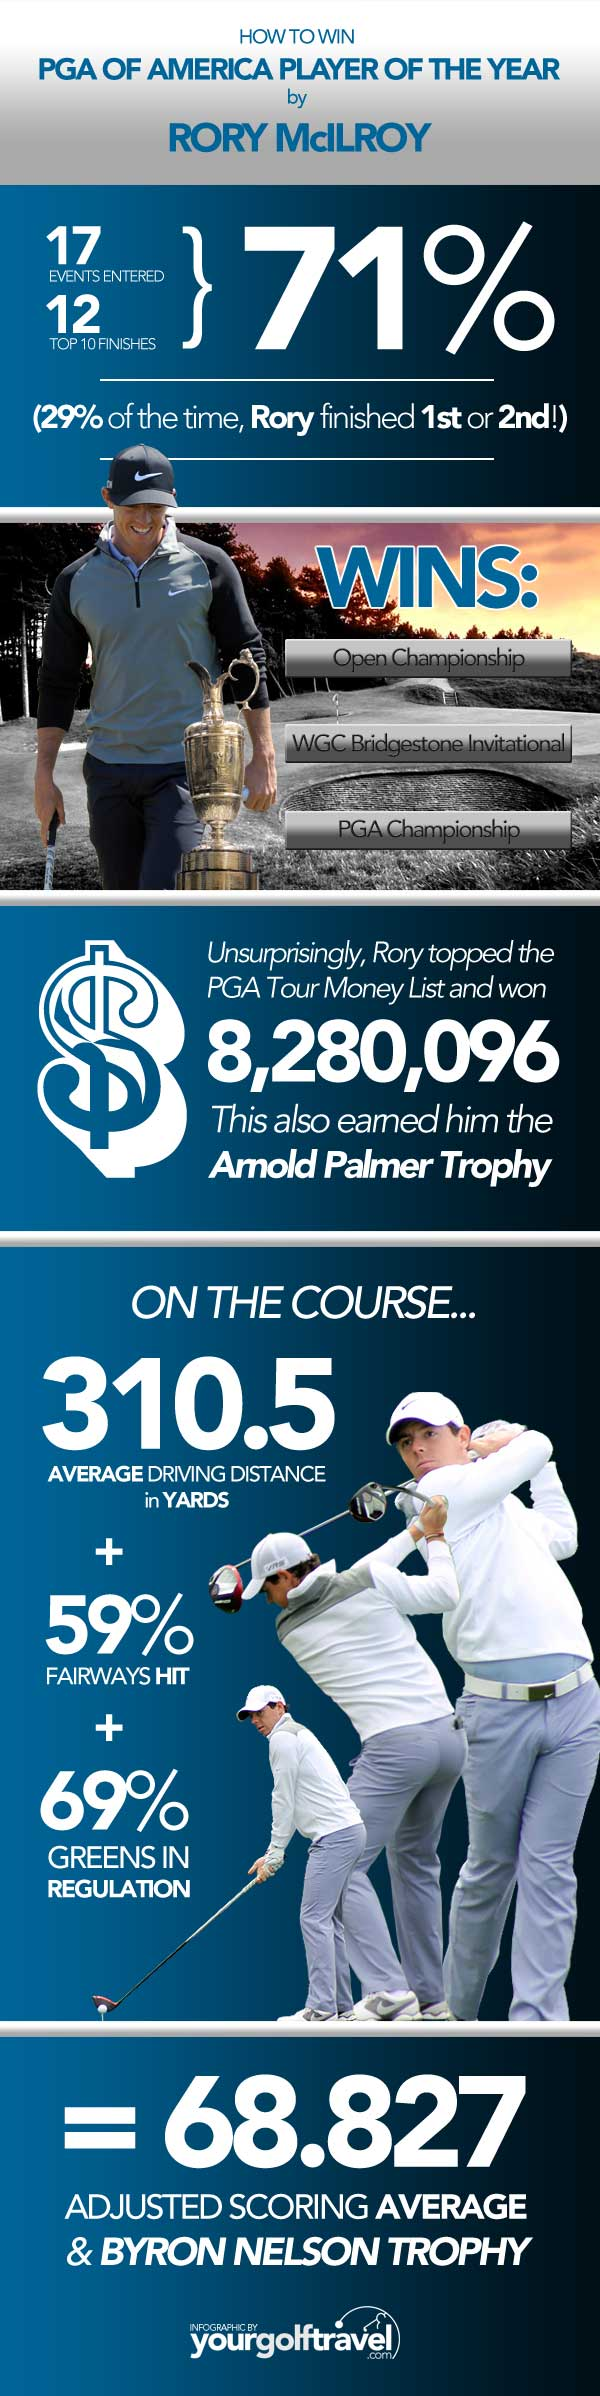 rory-mcilroy-player-of-the-year